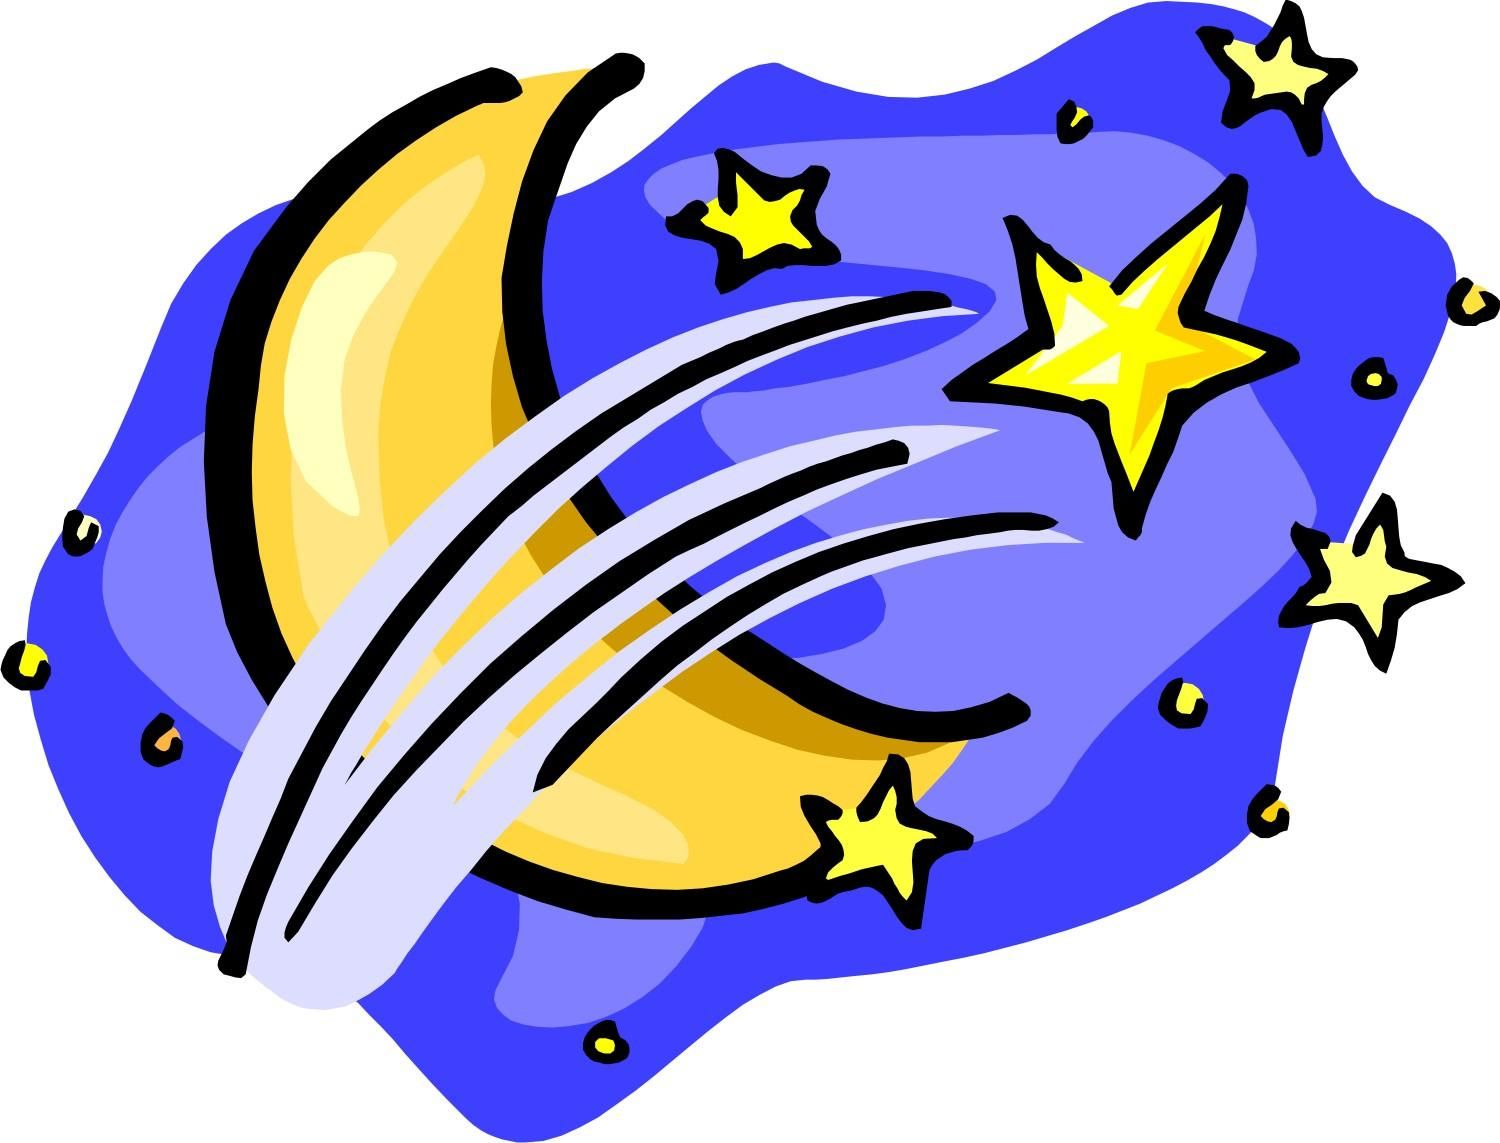 moon and stars clipart clipart kid the moon and stars rh pinterest co uk moon and stars clipart free clipart night moon and stars